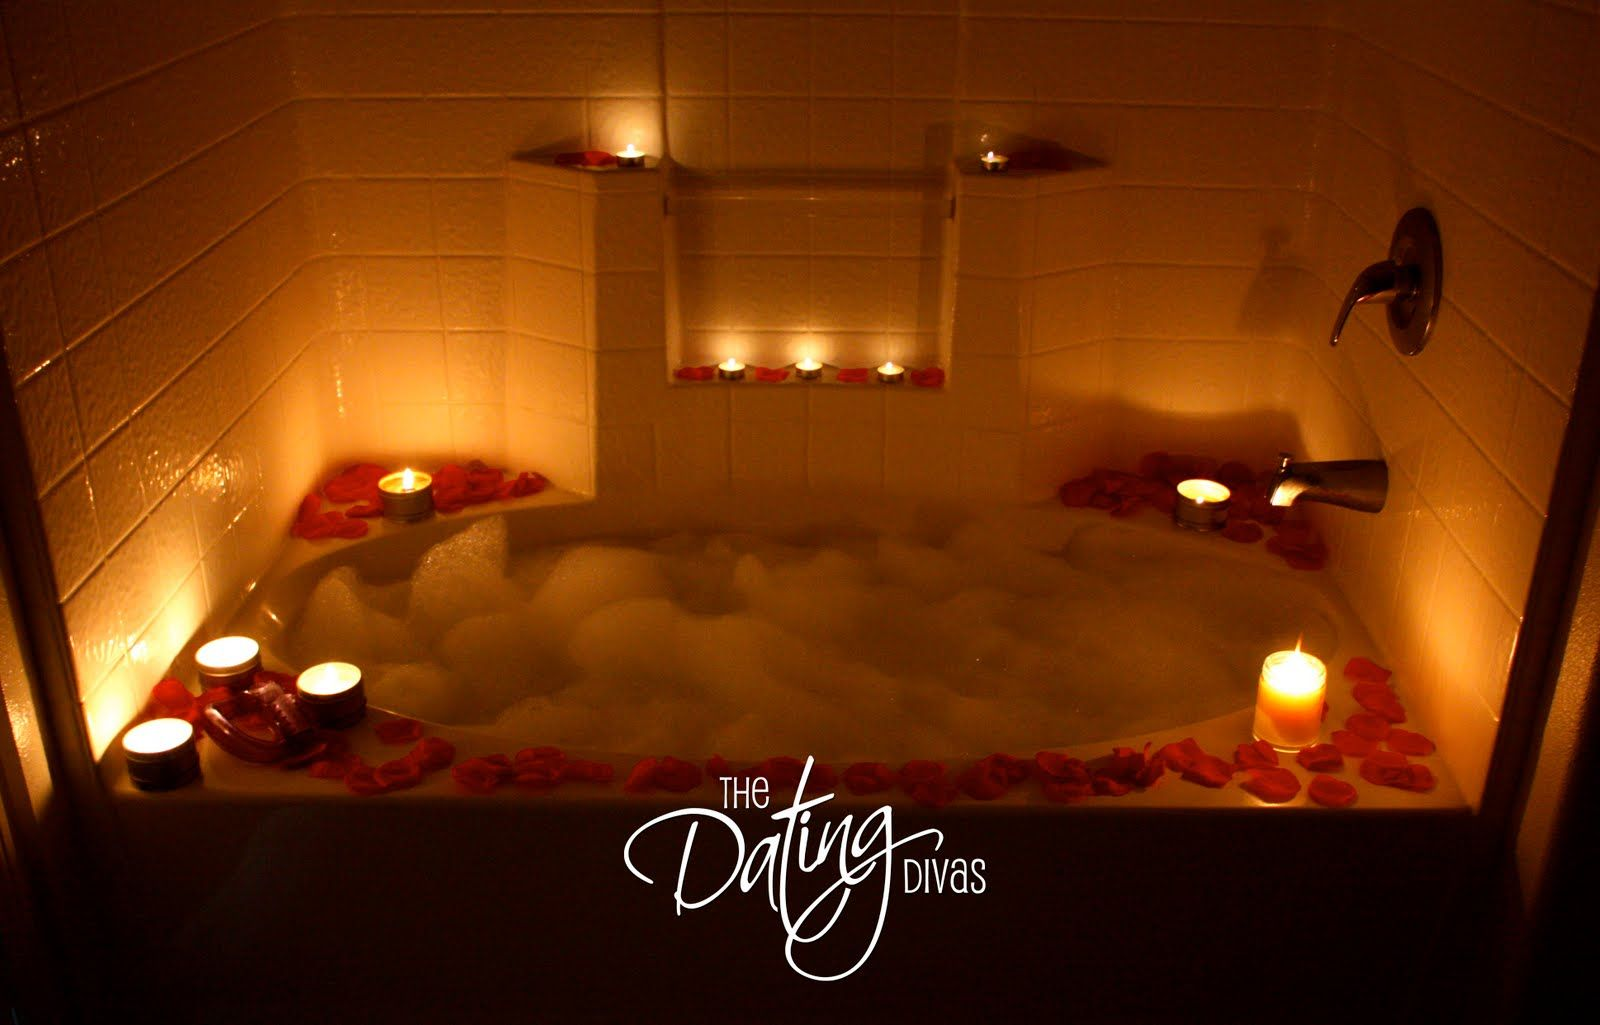 Set the mood with rose petals for romance with your spouse Best candles for romantic night